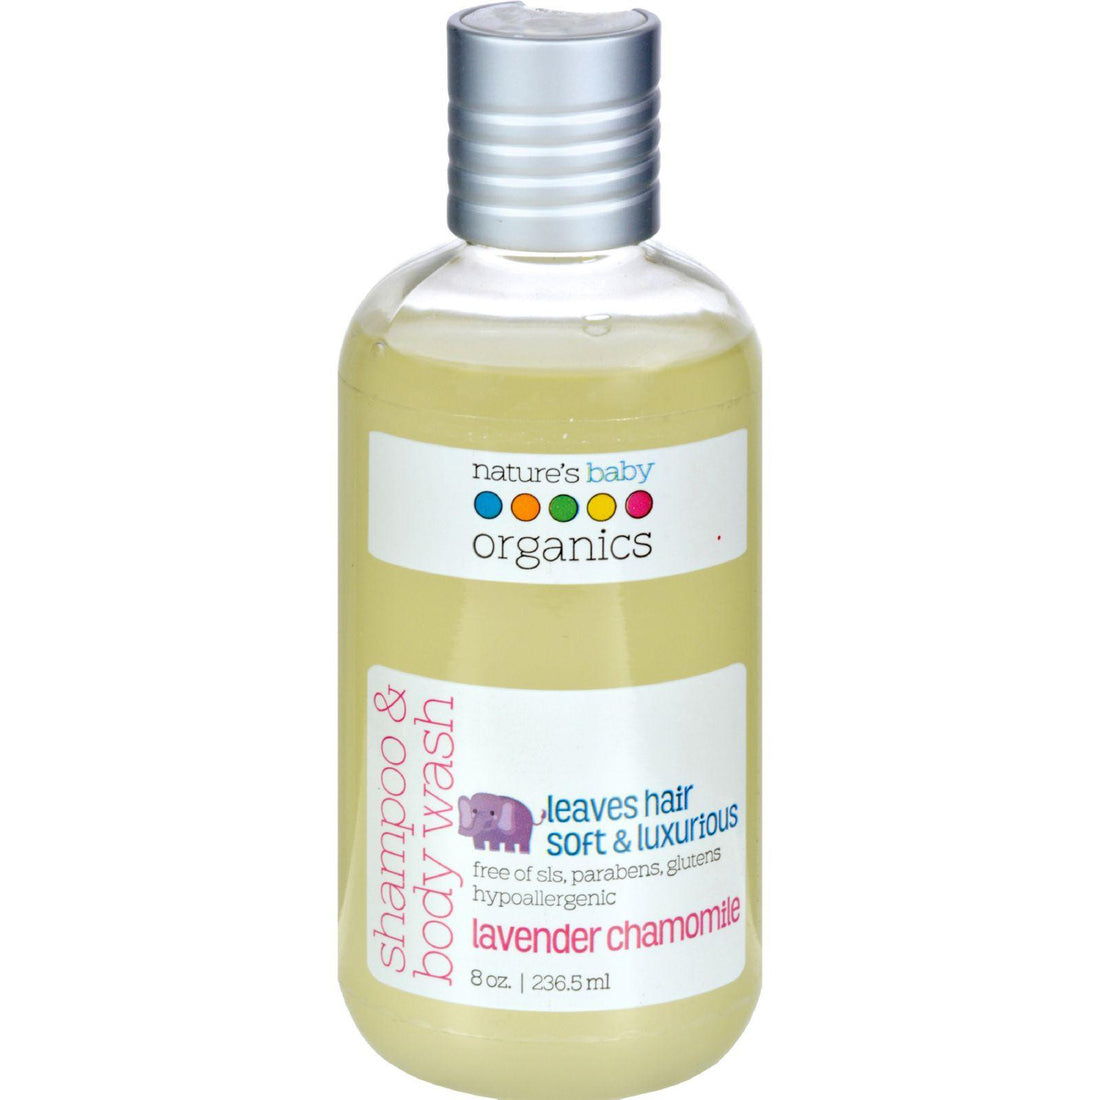 Mother Mantis: Nature's Baby Organics Shampoo And Body Wash Lavender Chamomile - 8 Fl Oz Nature's Baby Organics